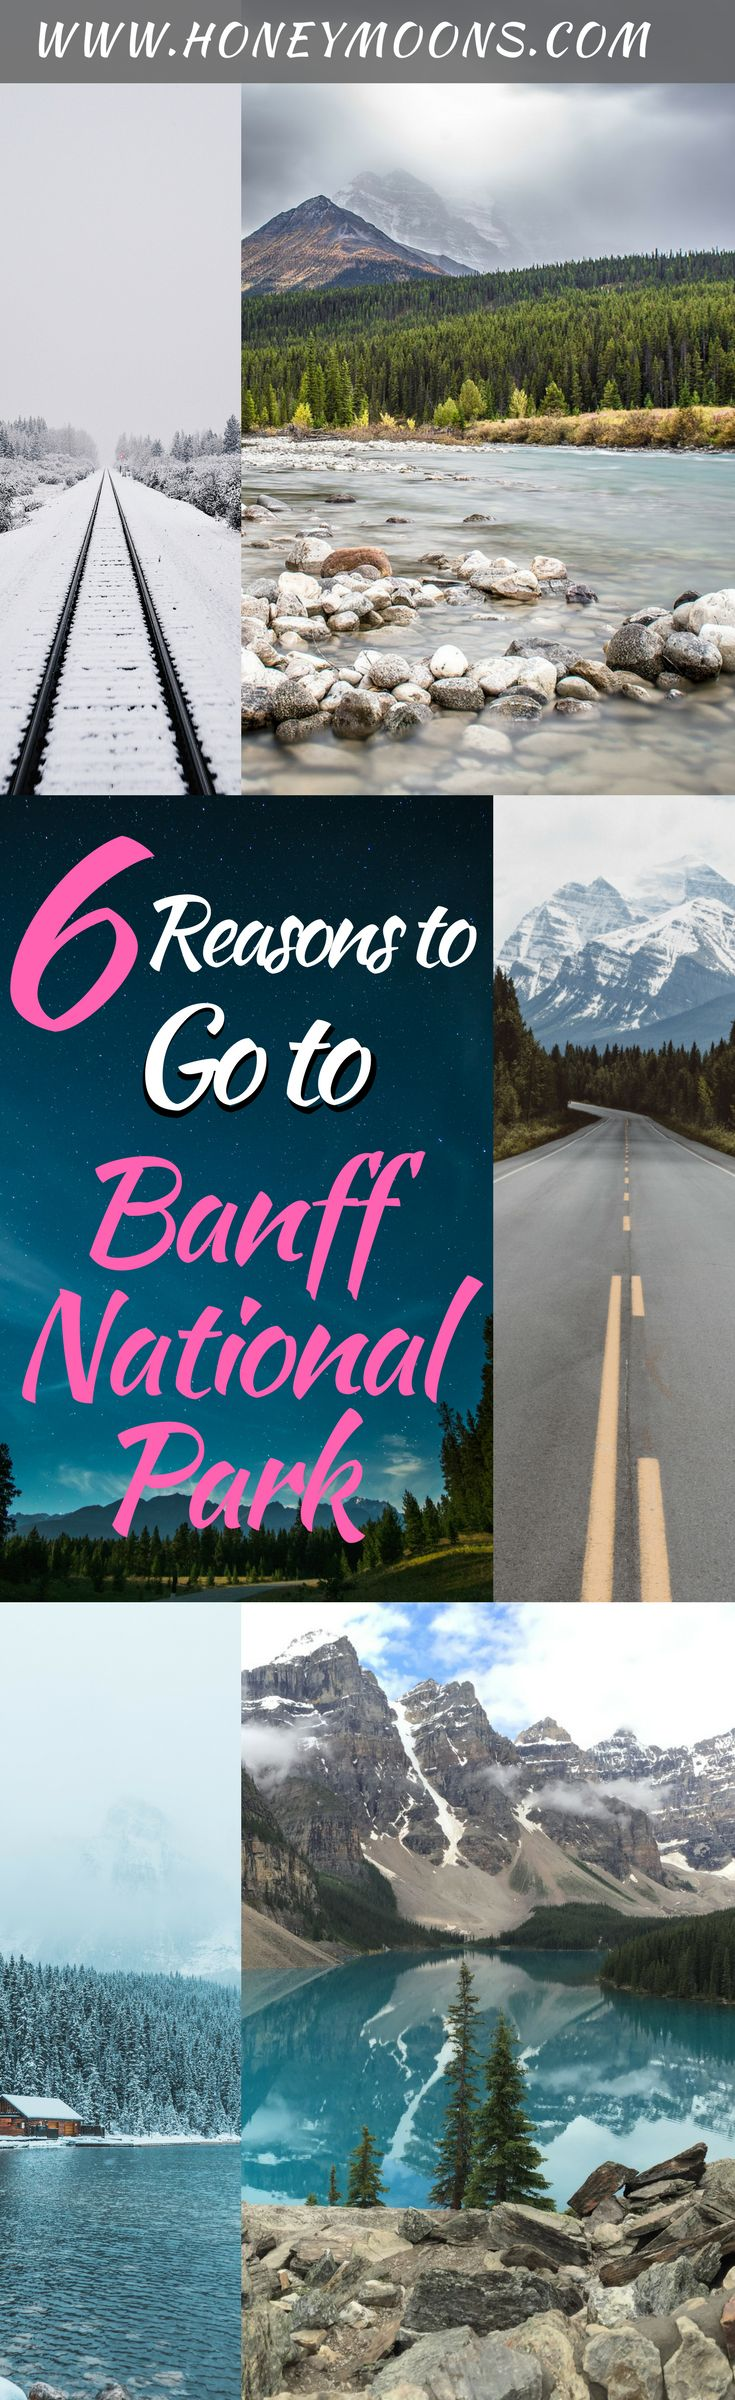 One of our favorite stops in Canada is Banff National Park, offering crystal blue waters, dramatic mountains, and a romantic resort town. Check out what we did in Banff and why you should go! | PIN FOR LATER | #BANFF #CANADA #BANFFNATIONALPARK #HONEYMOON